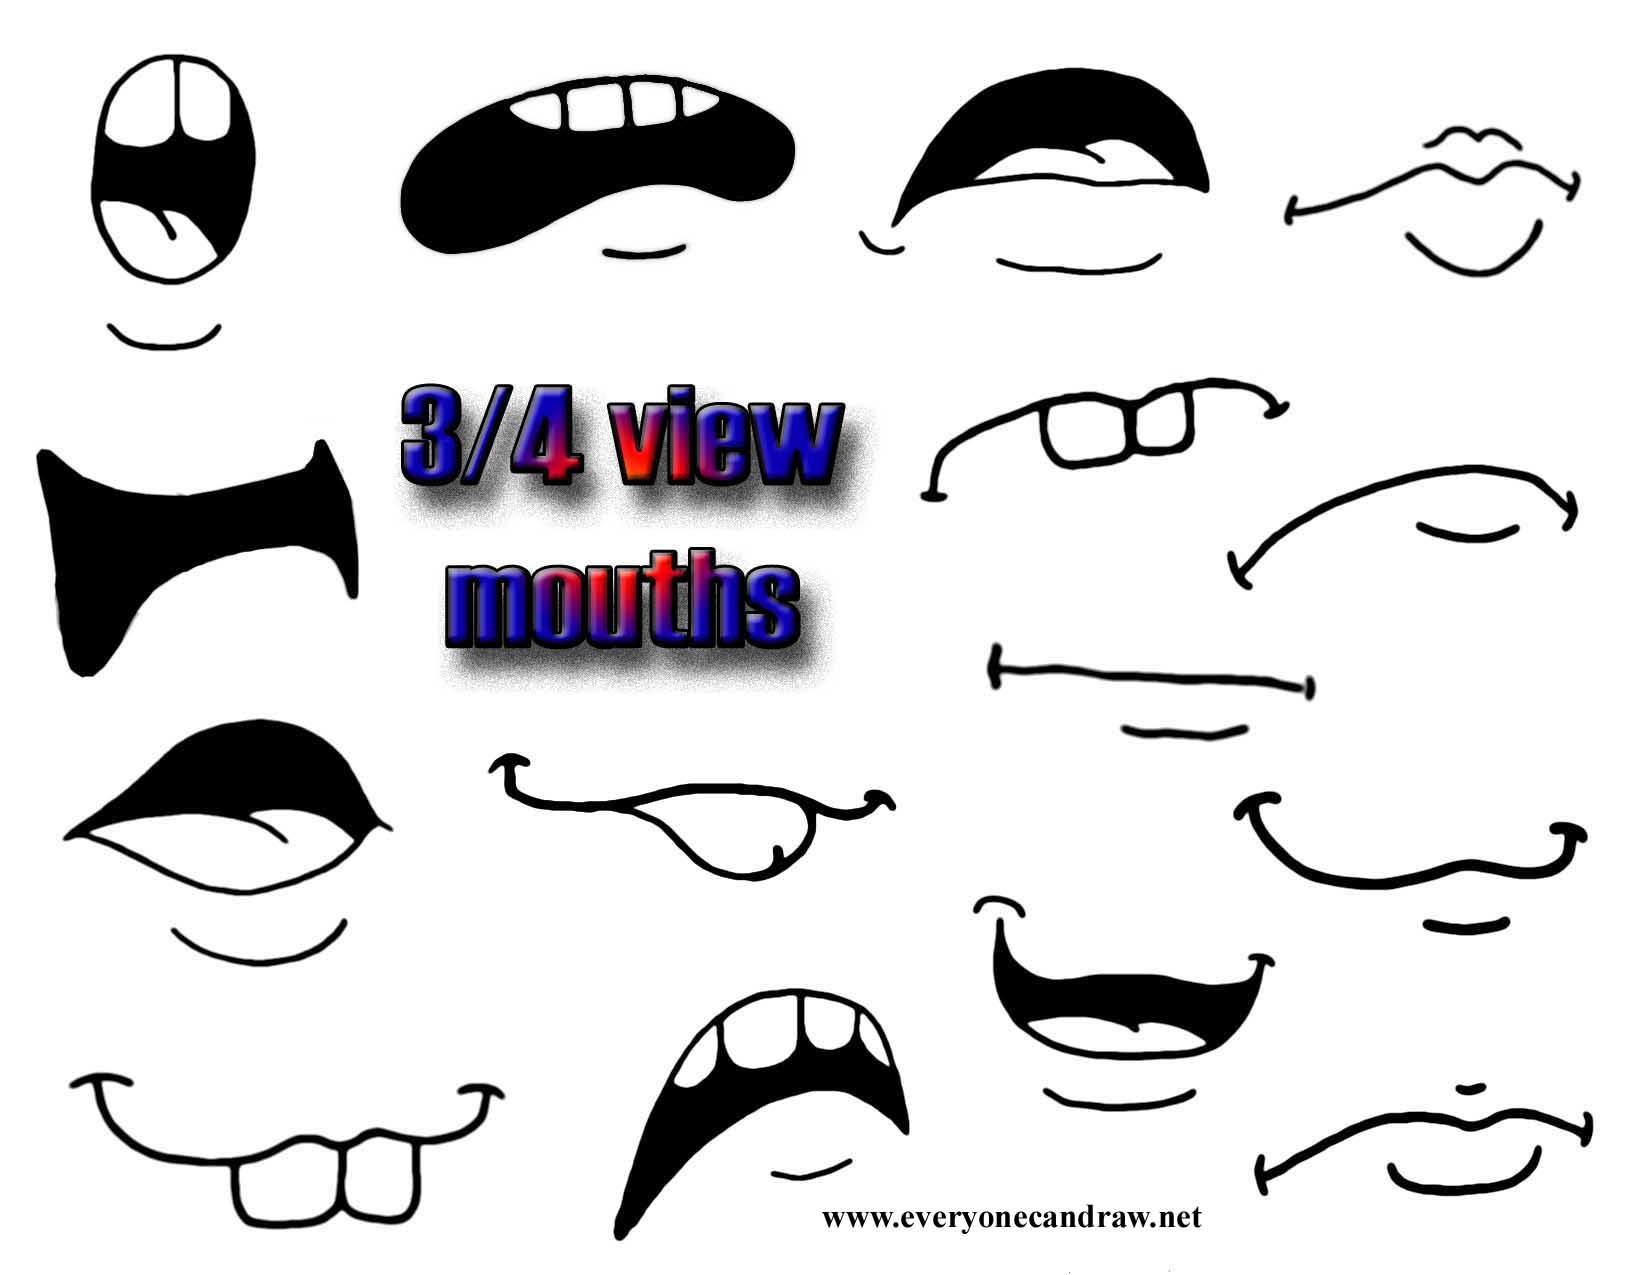 34 view mouths